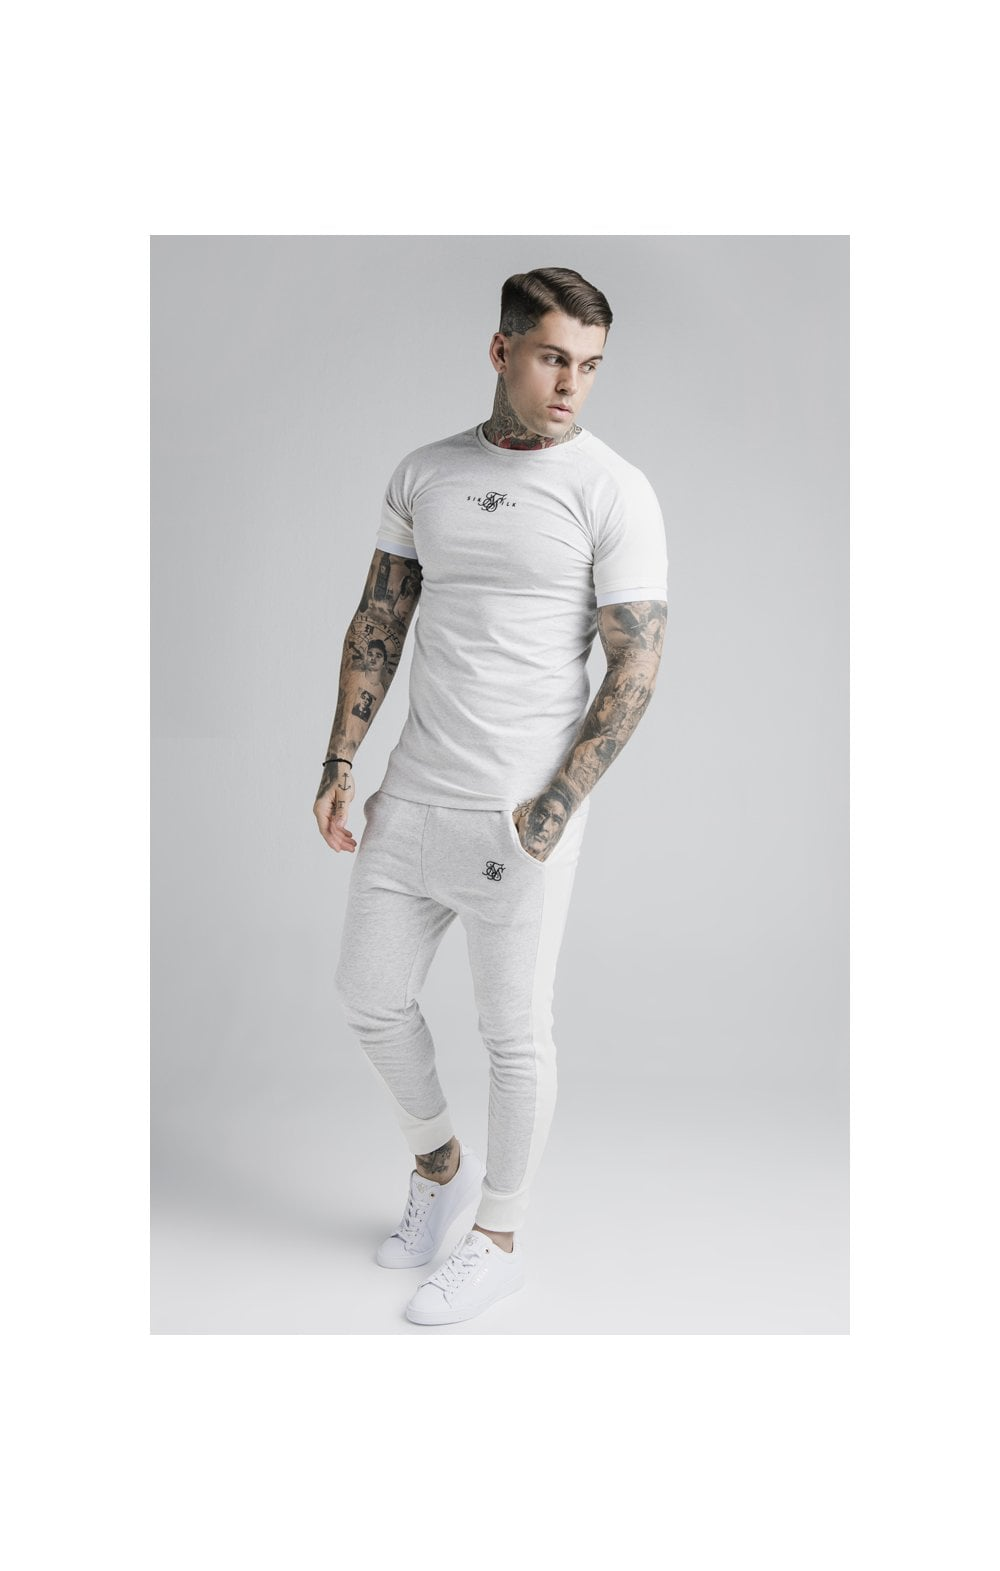 Load image into Gallery viewer, SikSilk Unite Rib Raglan Gym Tee - White (2)